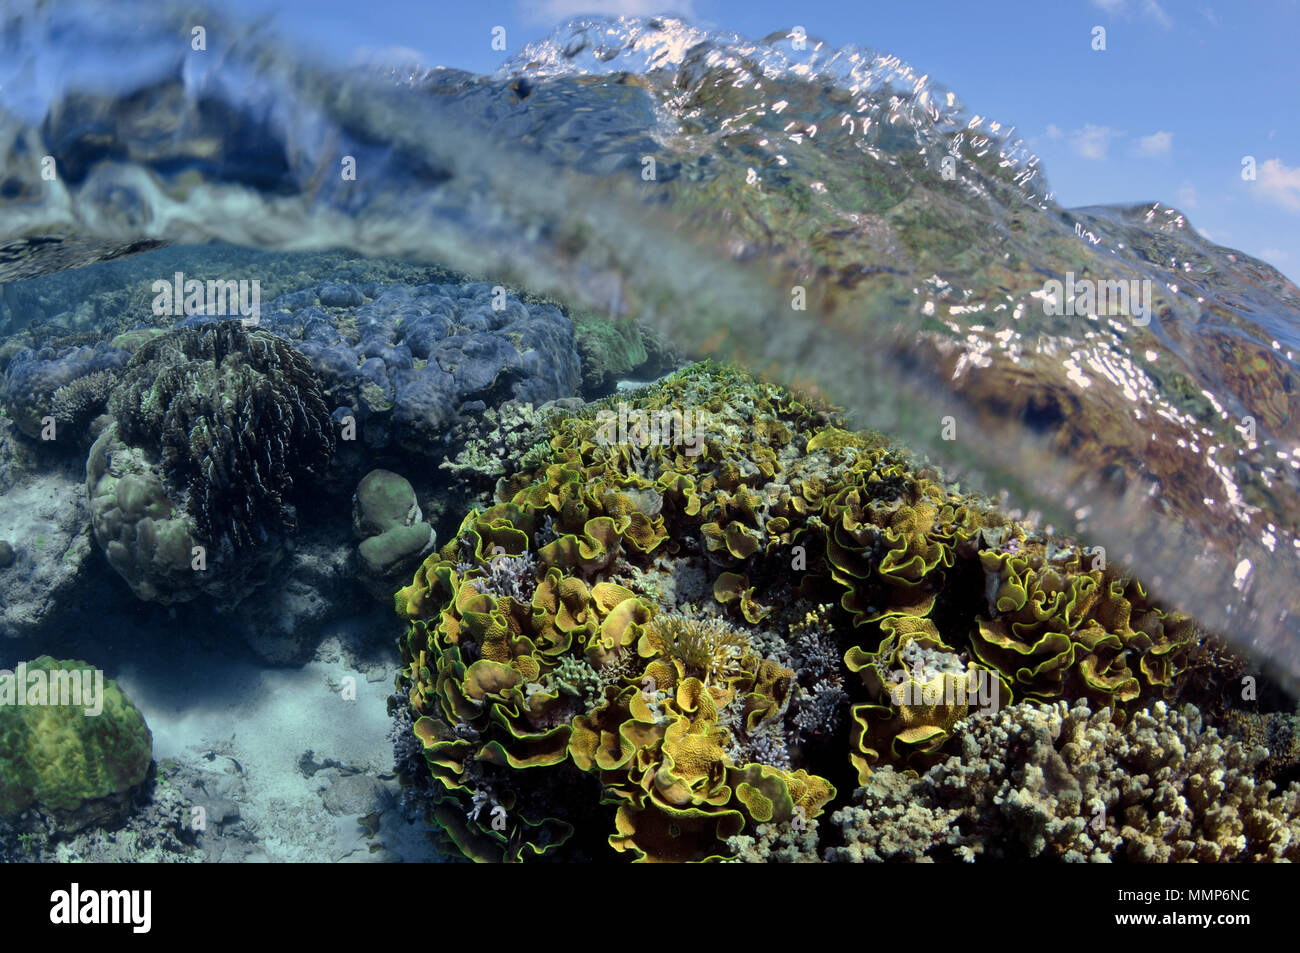 Pristine coral reef , mainly lettuce (scroll) coral, Turbinaria reniformis, and water surface, Pohnpei, Federated States of Micronesia - Stock Image